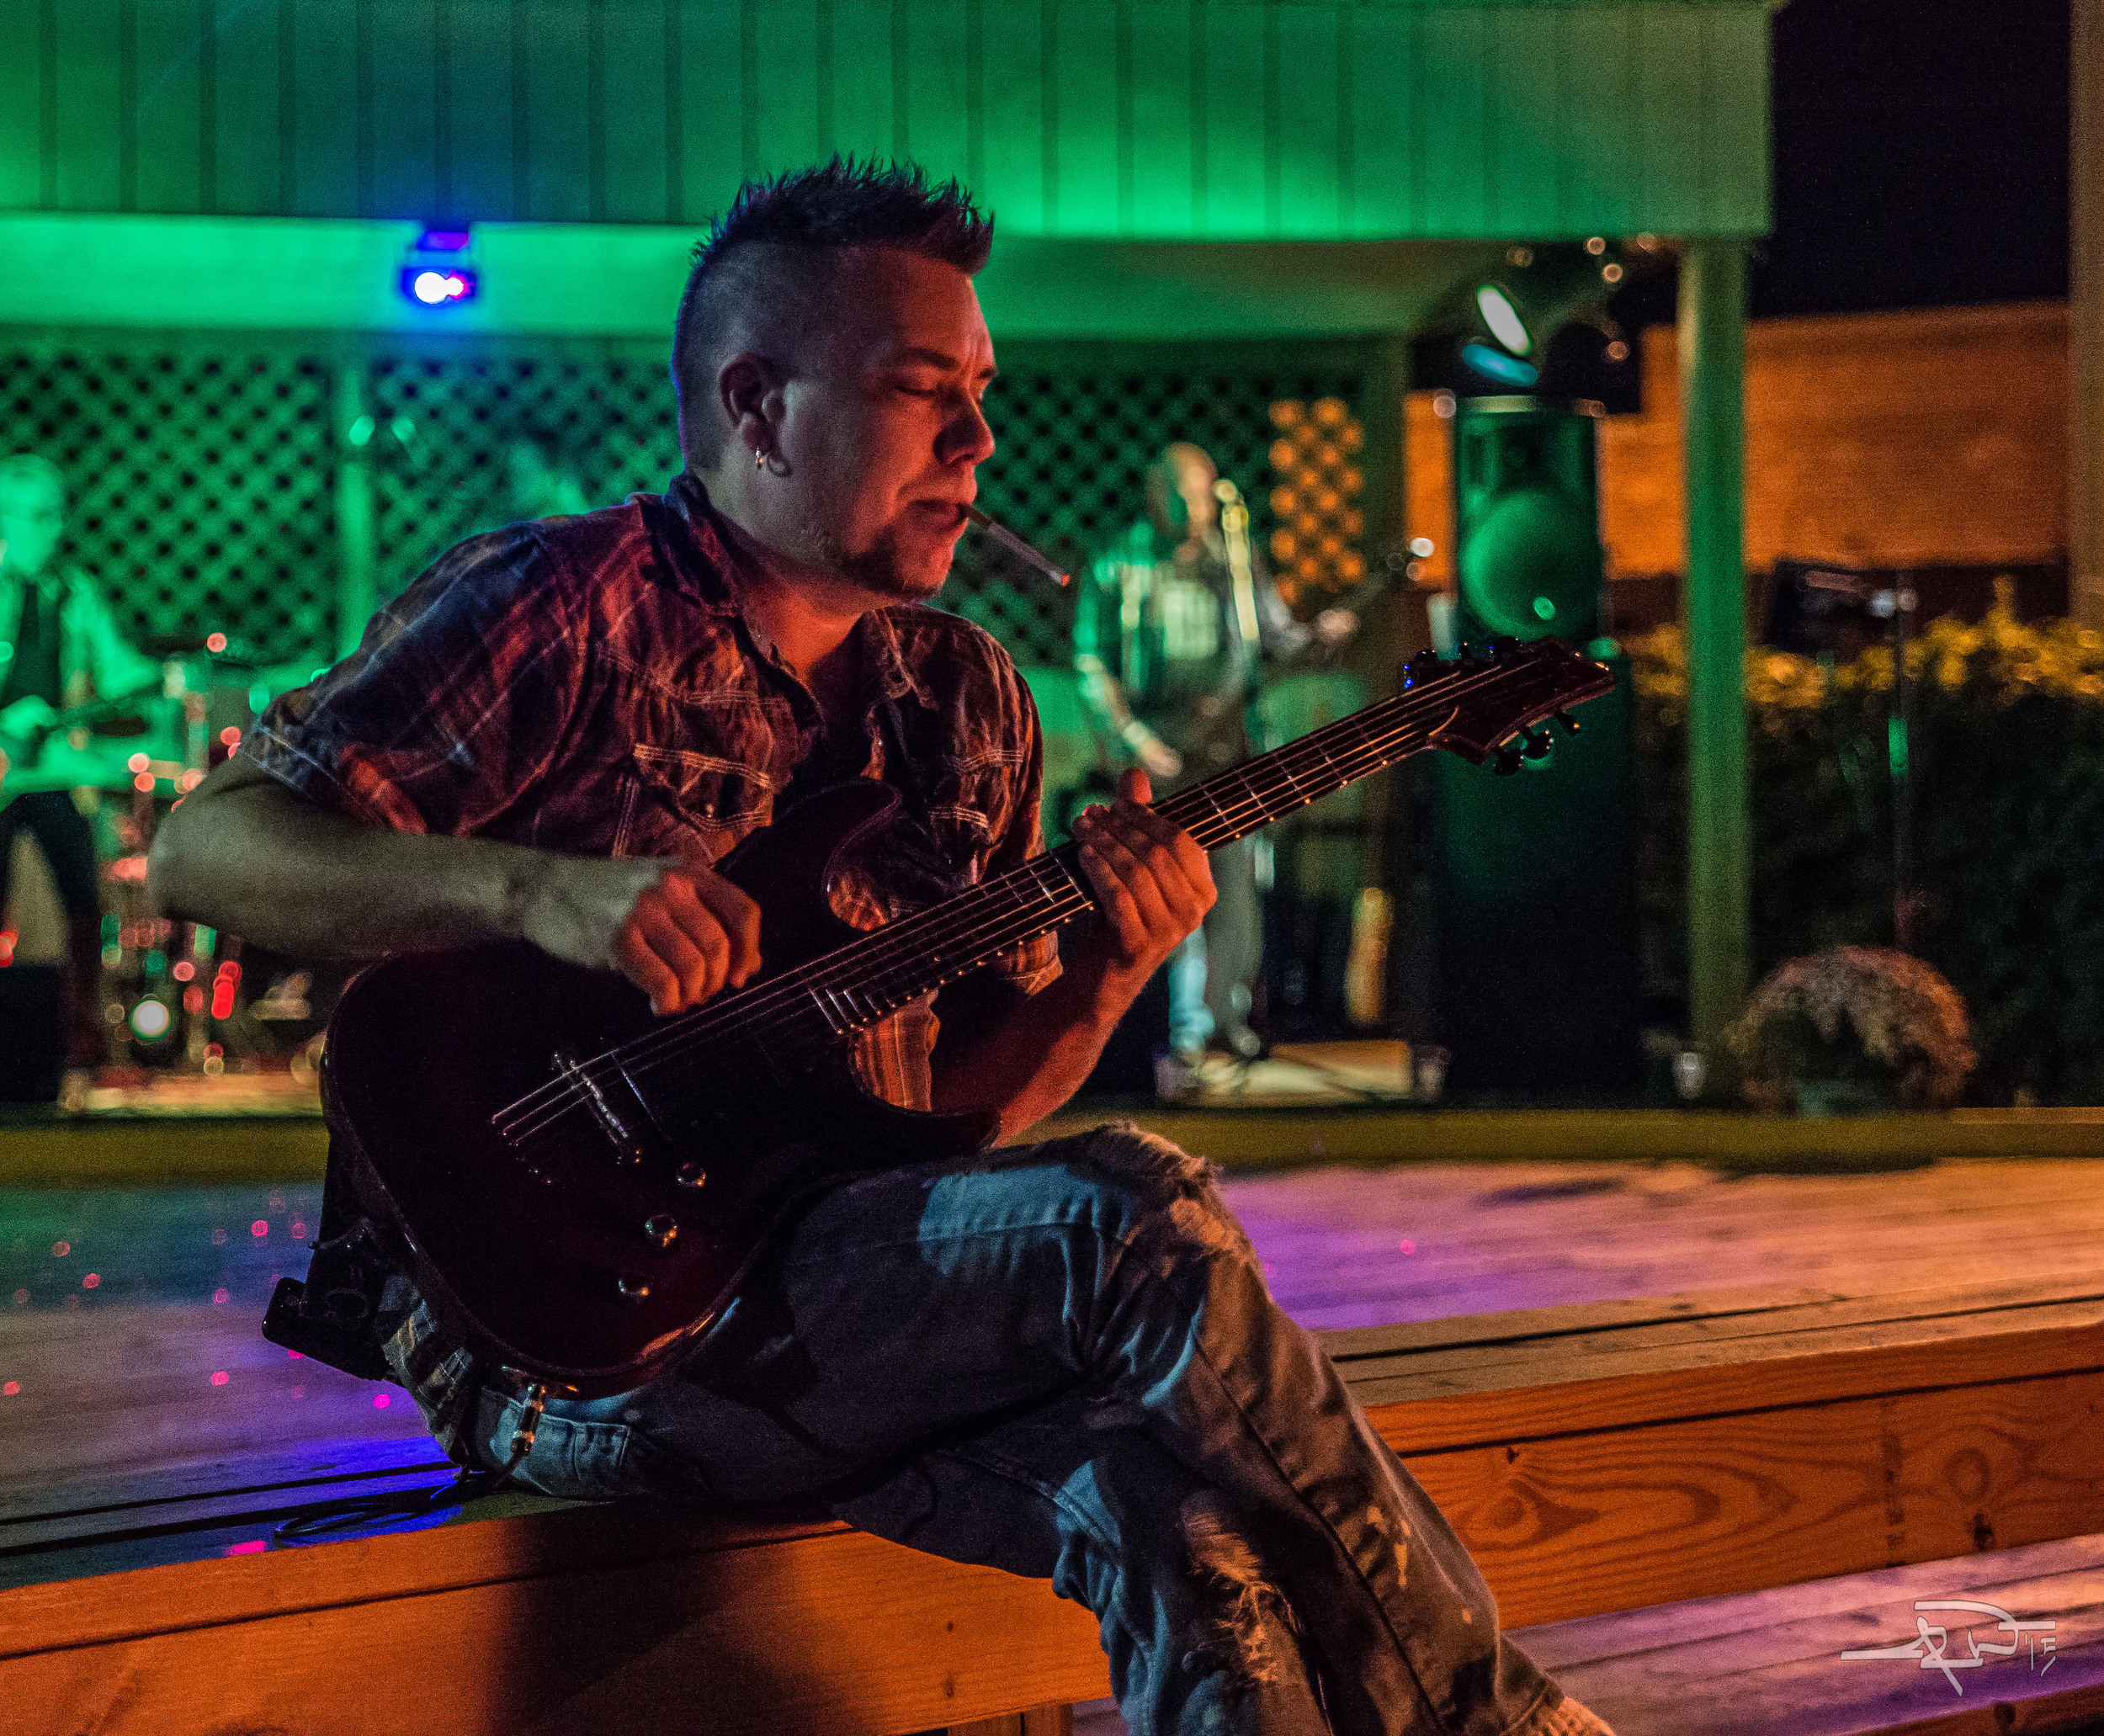 Beau Green, Guitarist, Sitting by the fire